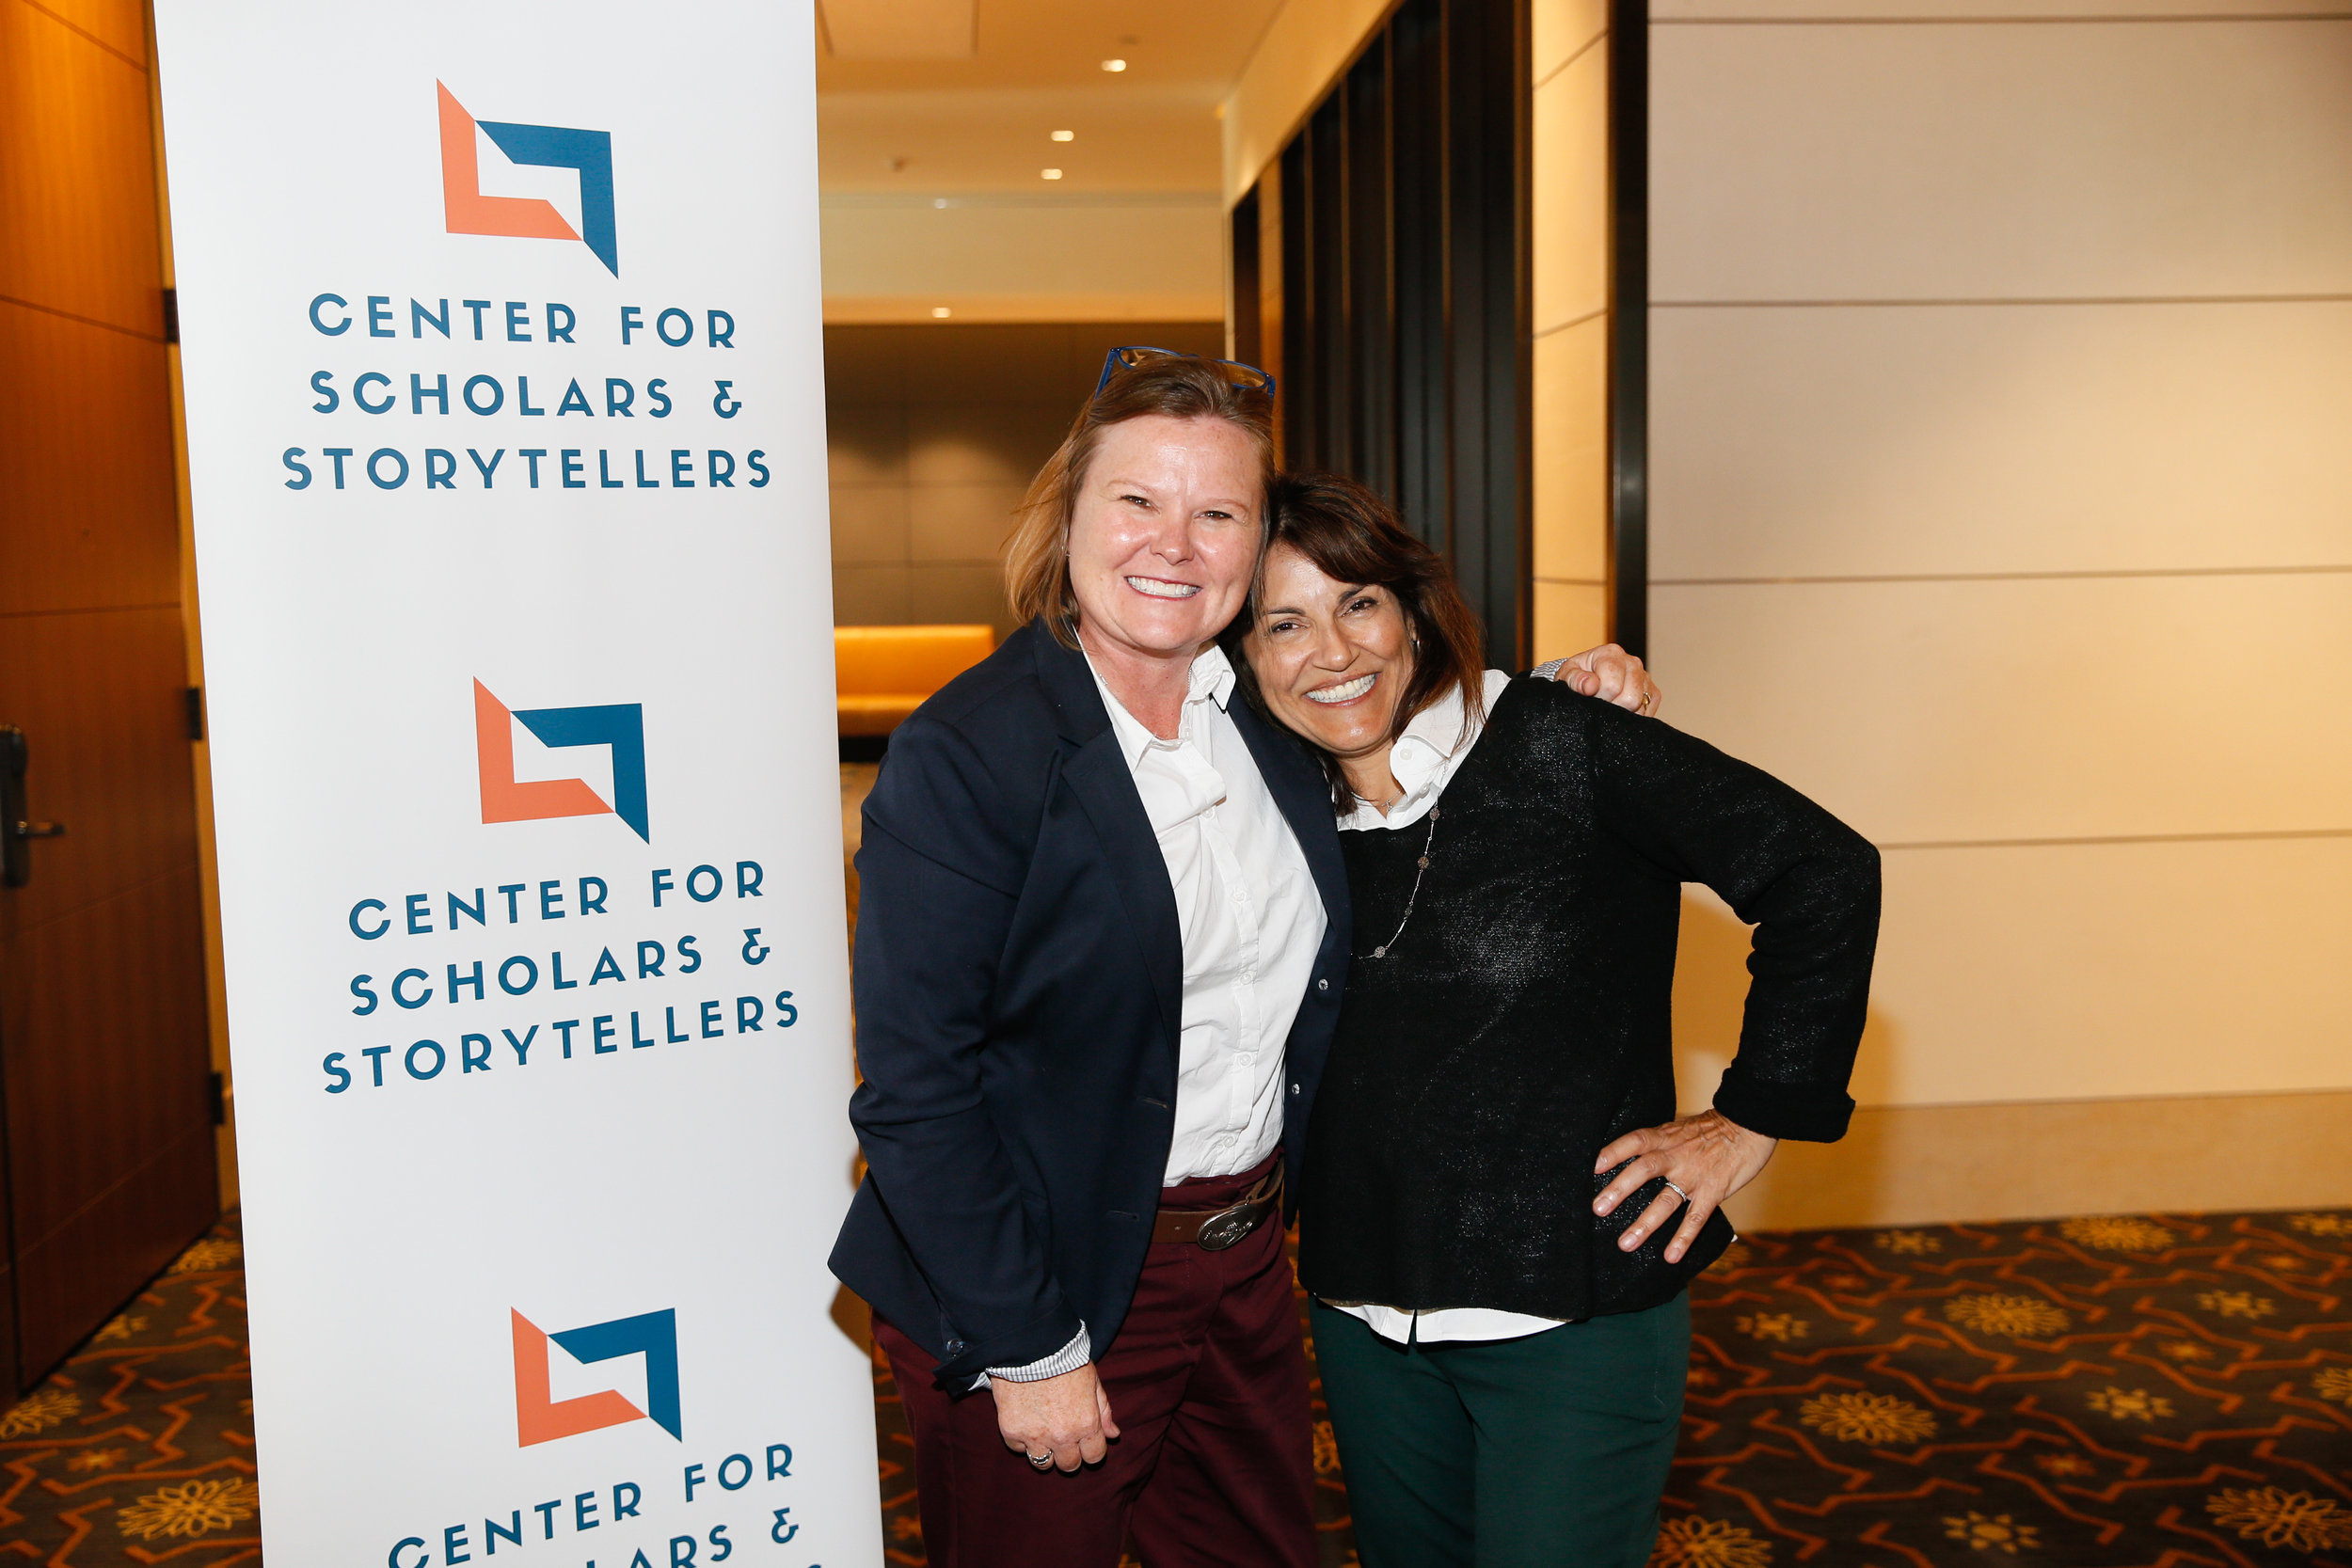 Chief Innovation Officer at Westside Children's Center Marianne Guilfoyle (left) with CSS Founder and Executive Director Dr. Yalda T. Uhls (right).